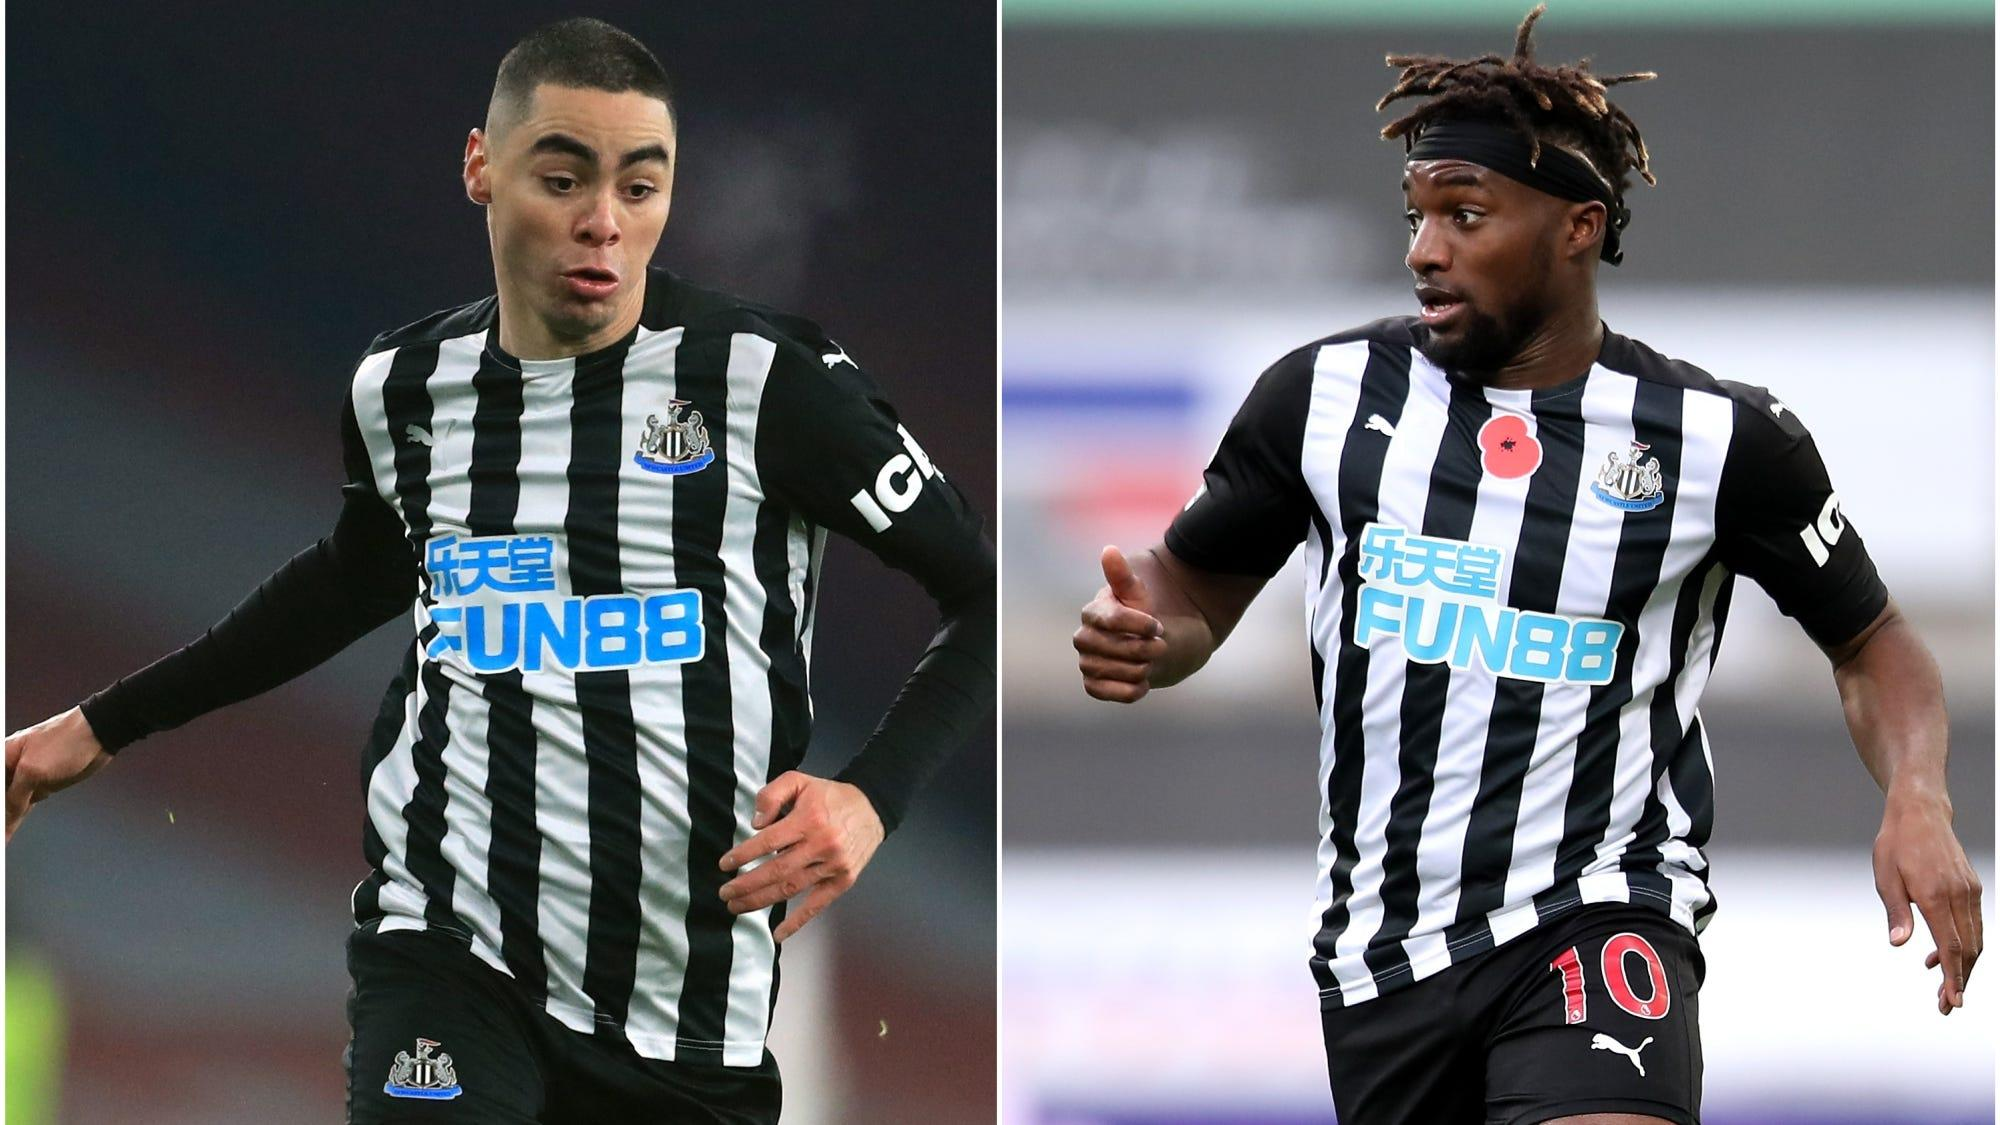 Newcastle duo Miguel Almiron and Allan Saint-Maximin ruled out until April